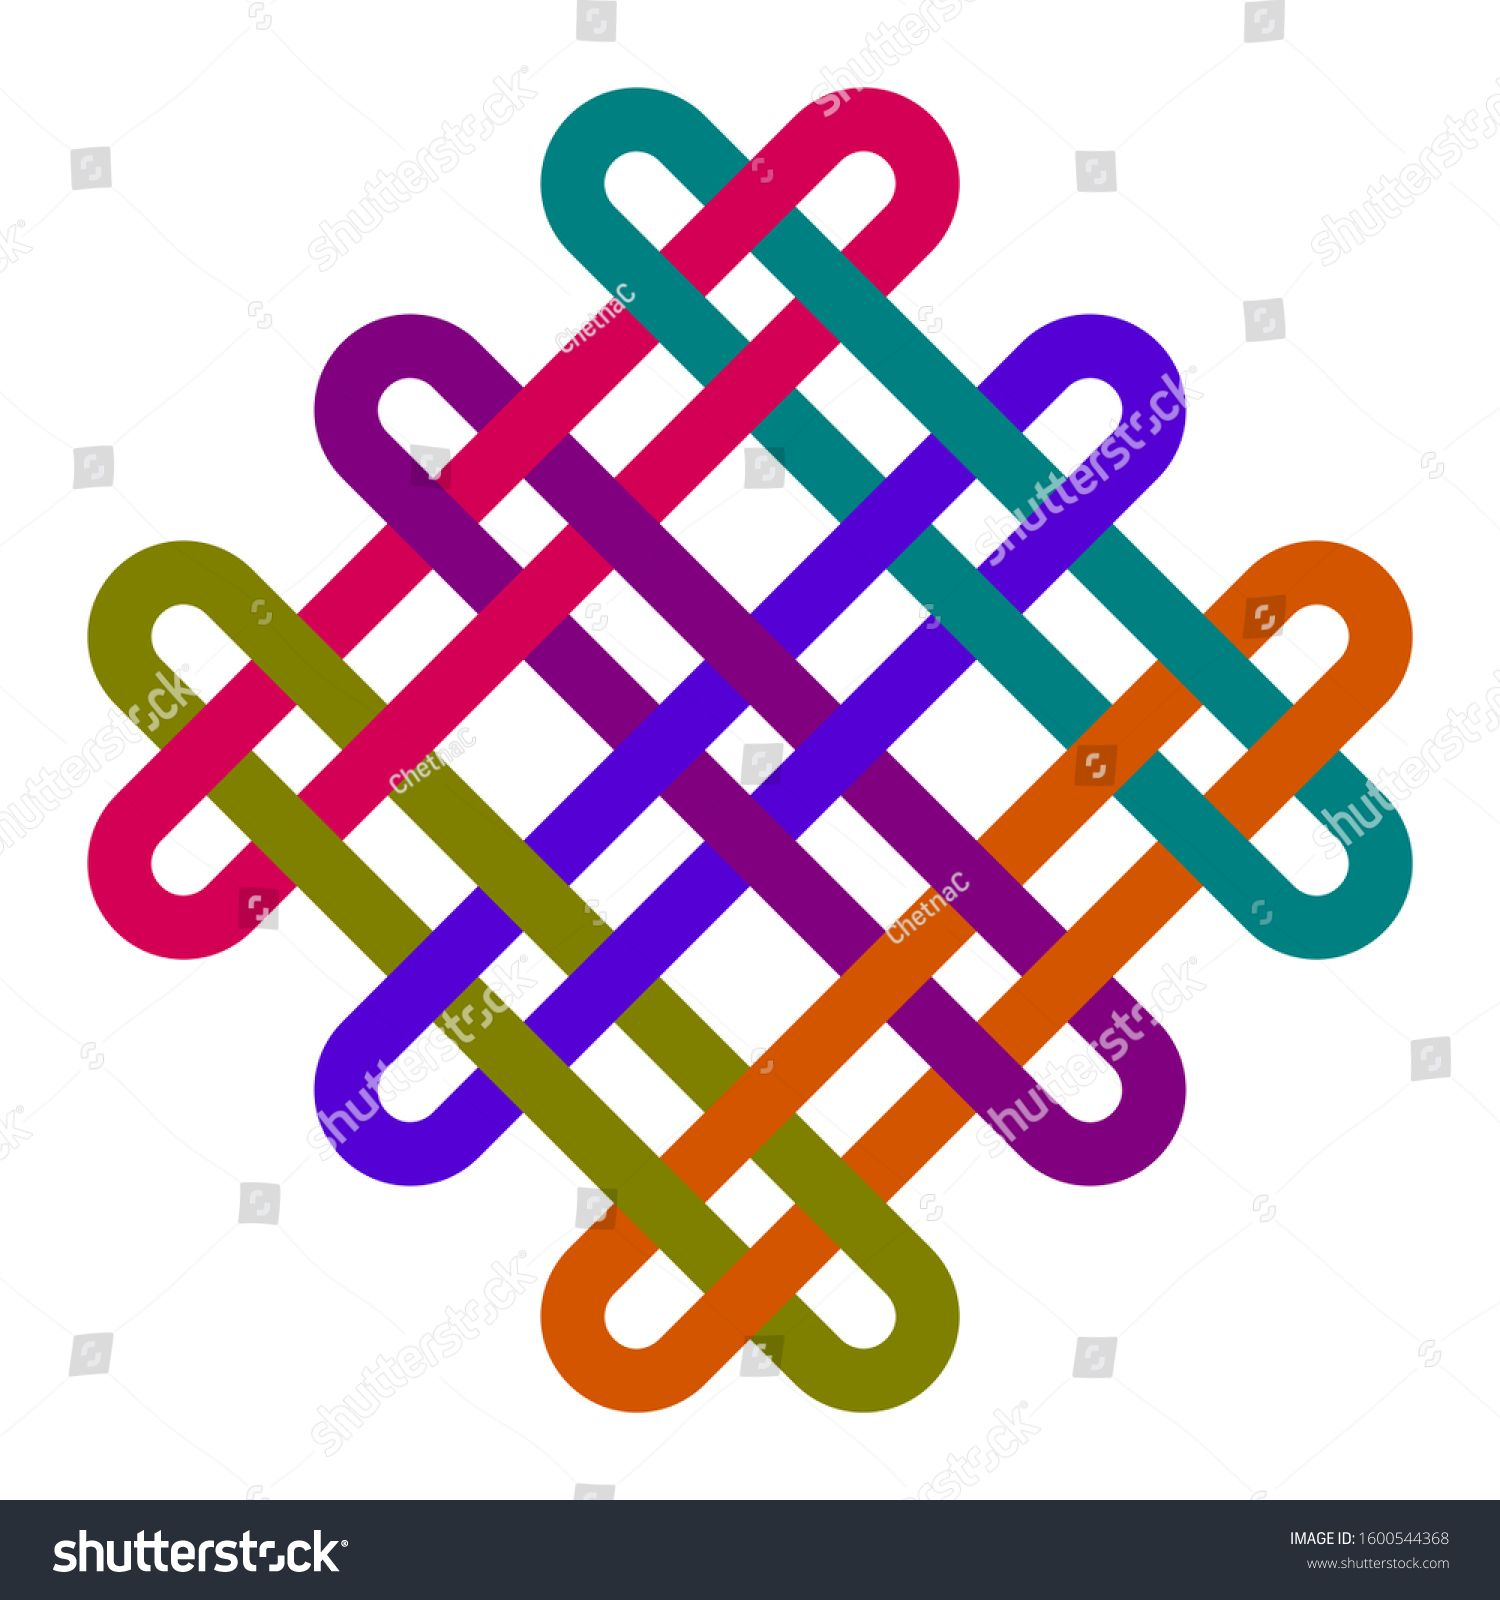 Mystical knot of longevity and health, a sign of good luck